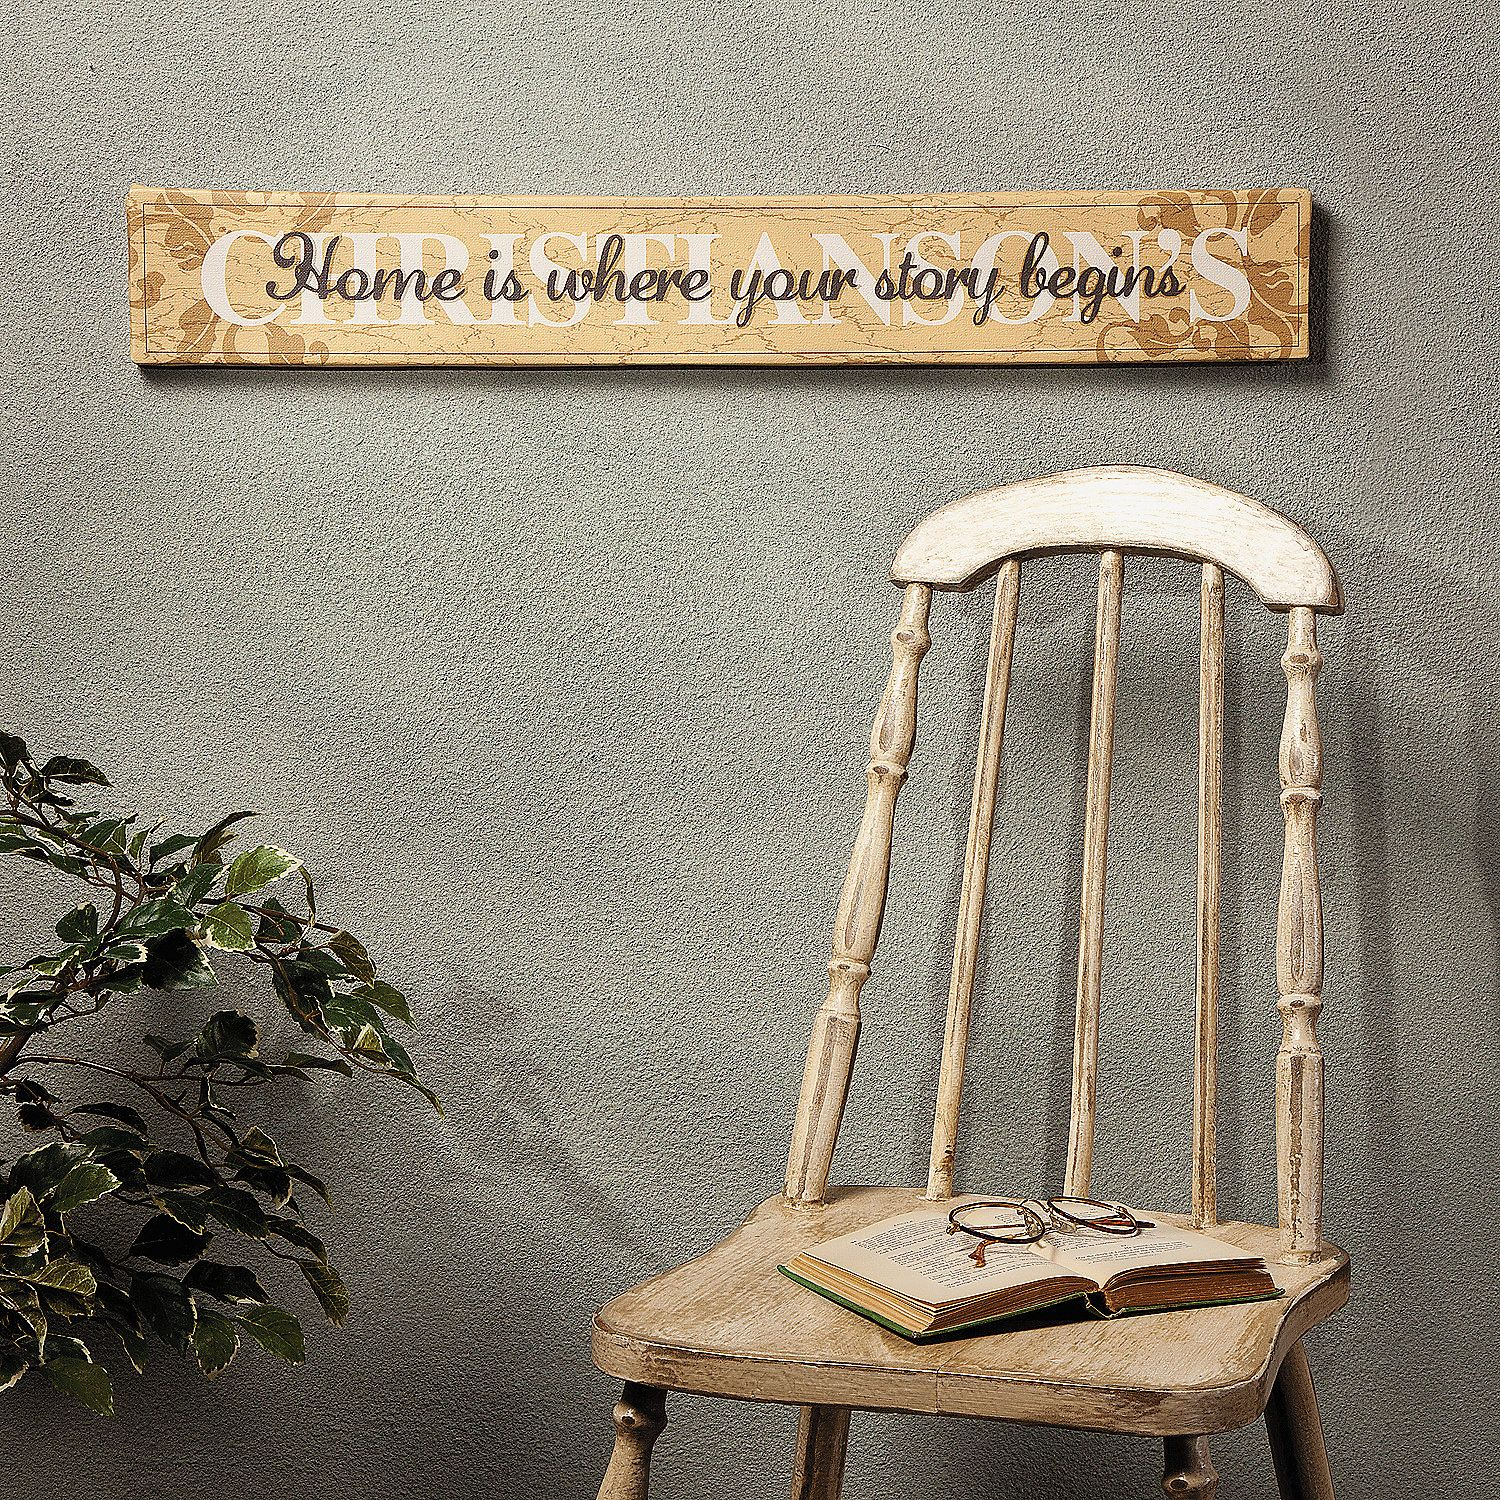 "Wall Decor Signs For Home Enchanting Home Is Where Your Story Begins"" Sign  Orientaltrading  Sign Inspiration"